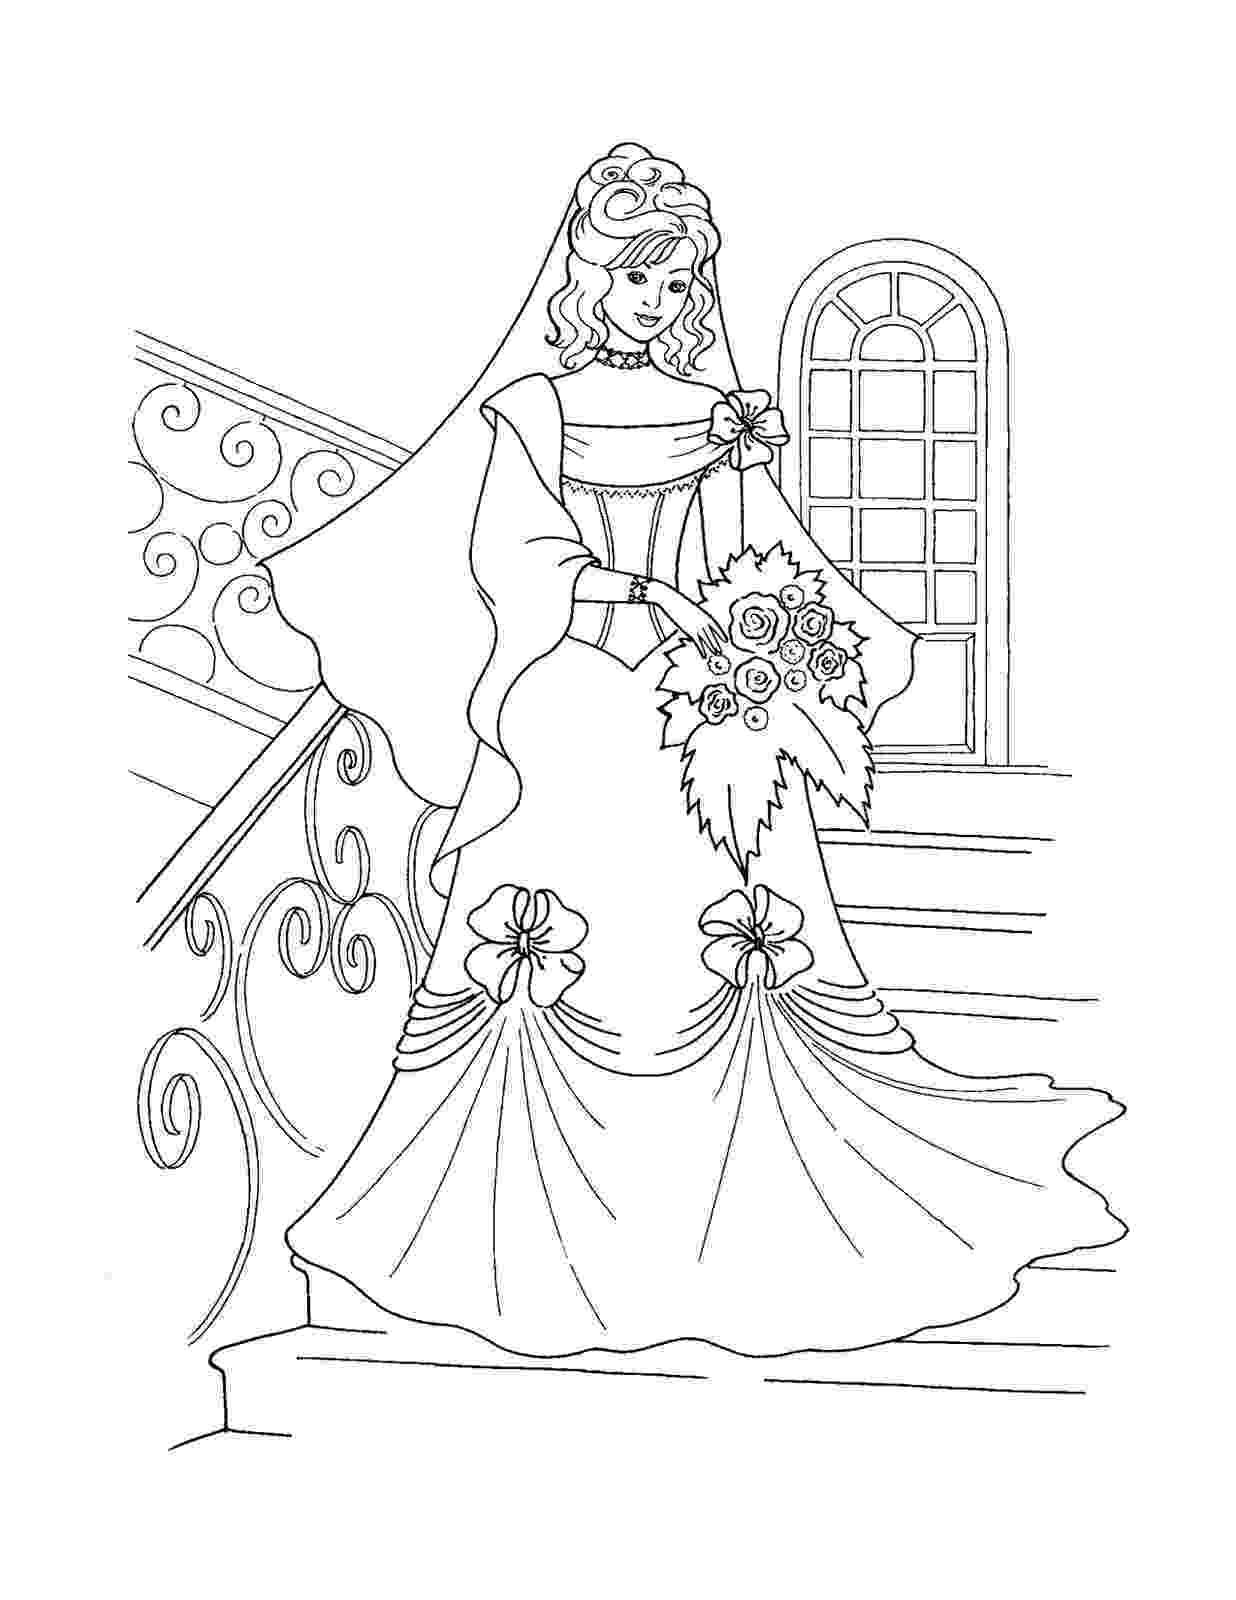 coloring pages princesses printable barbie princess coloring pages for kids cool2bkids coloring princesses pages